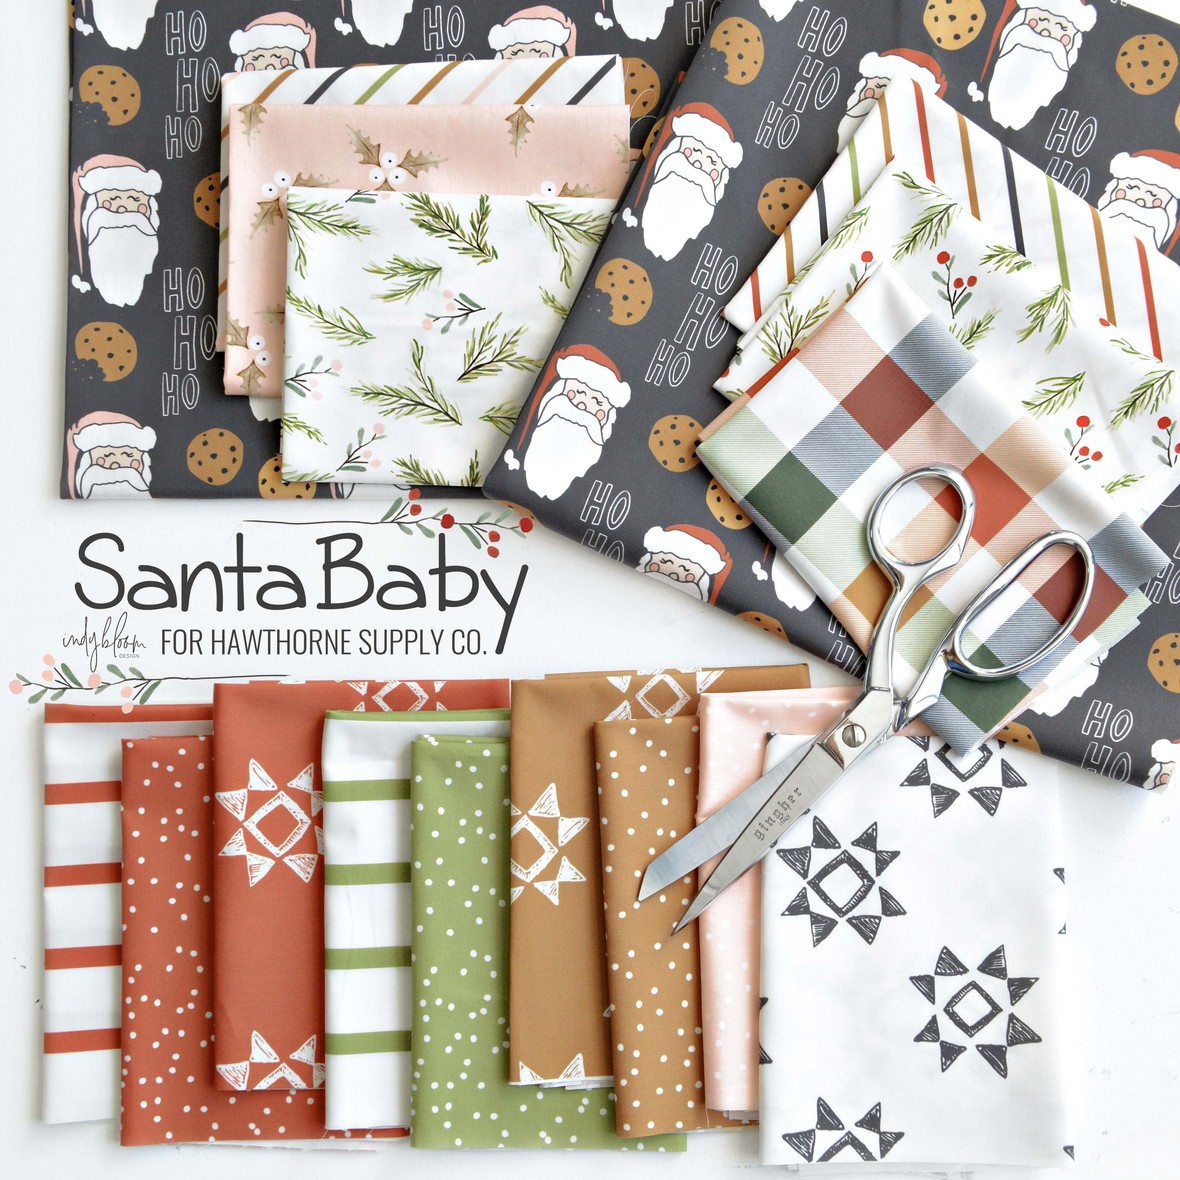 Santa Baby Fabric Poster Indy Bloom at Hawthorne Supply Co